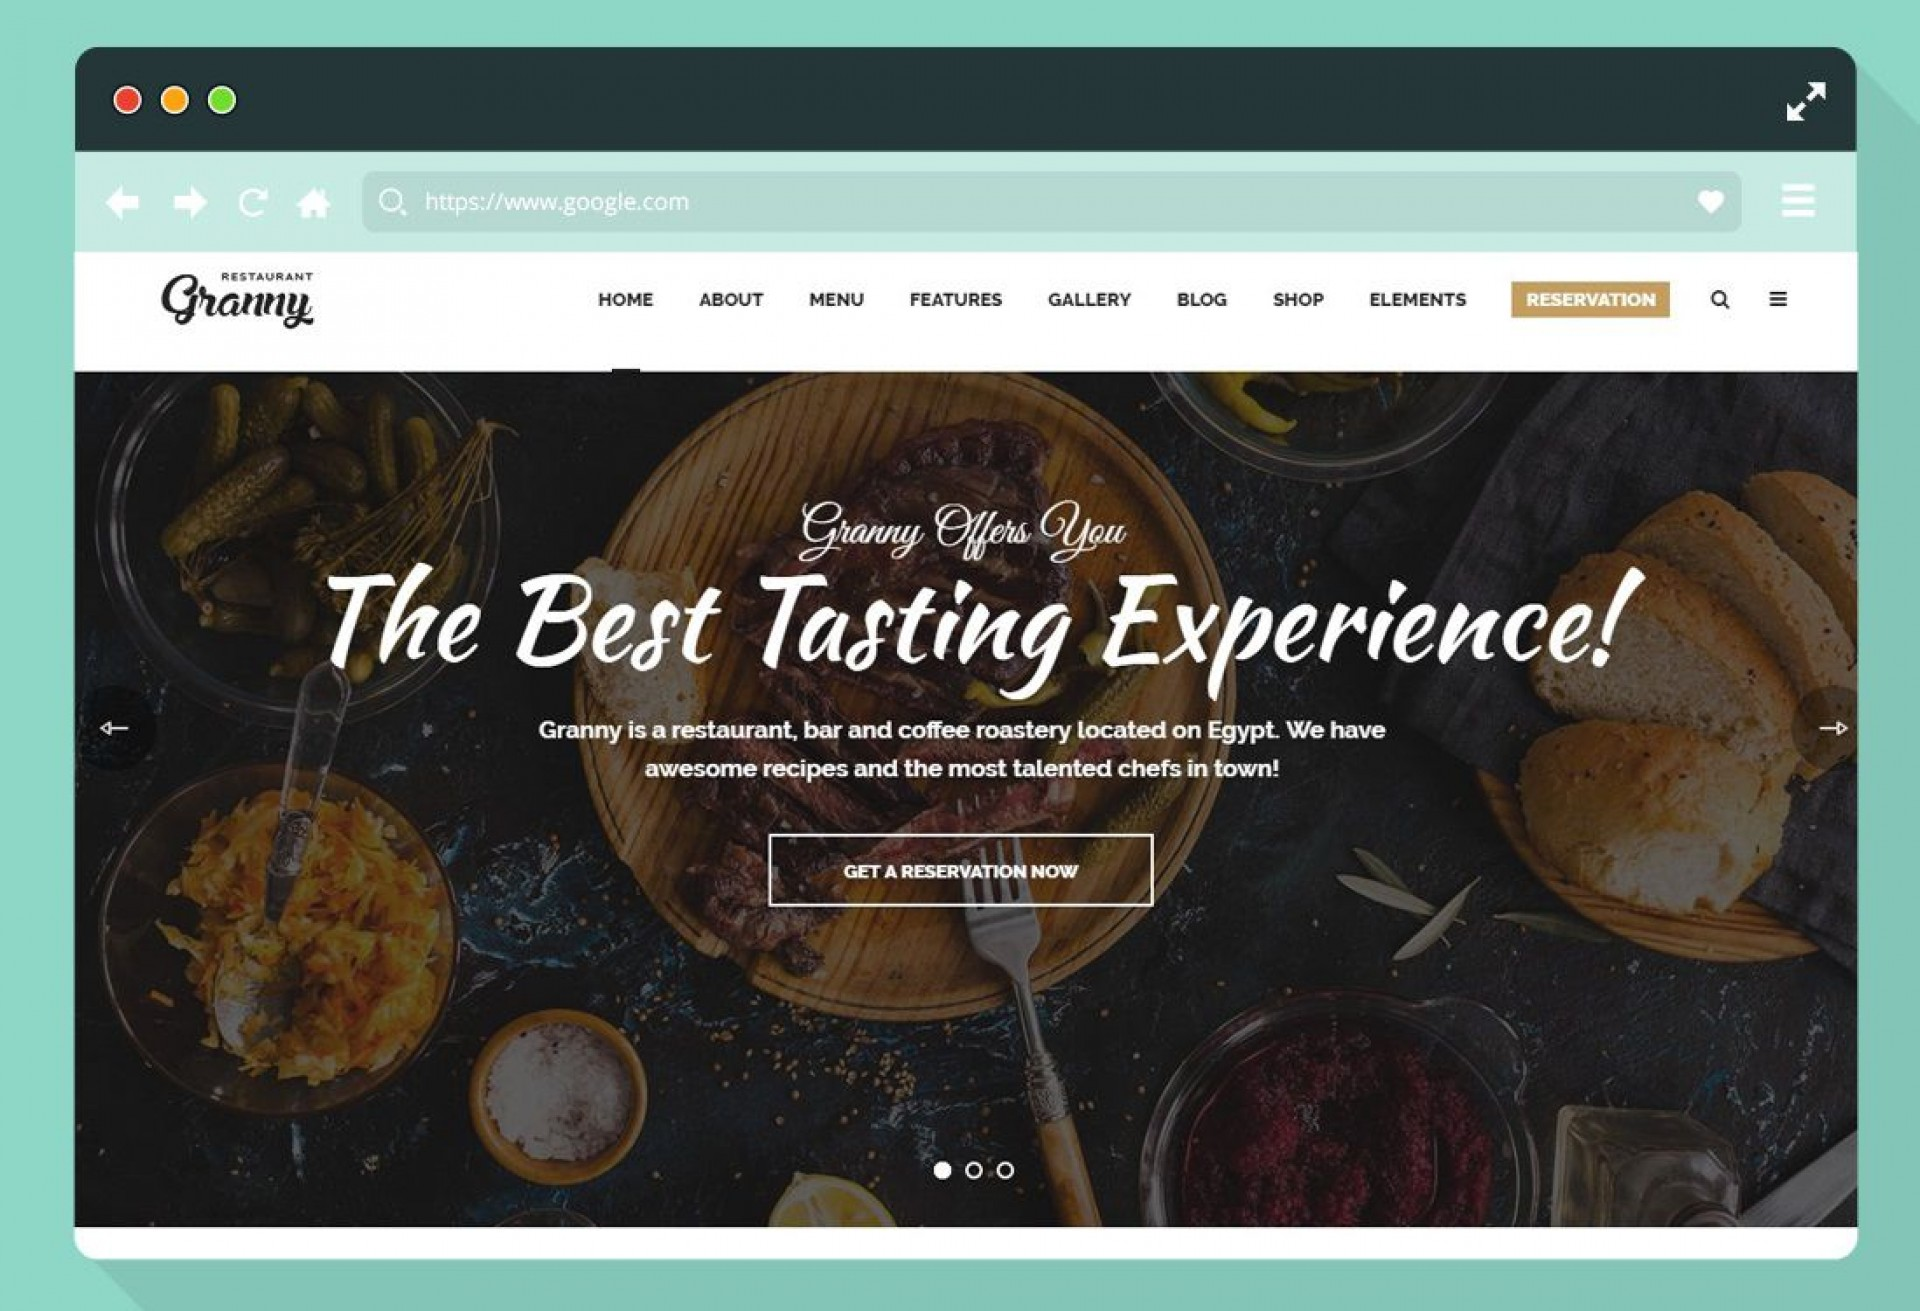 006 Wonderful Download Web Template Html5 Photo  Photography Website Free Logistic Busines1920